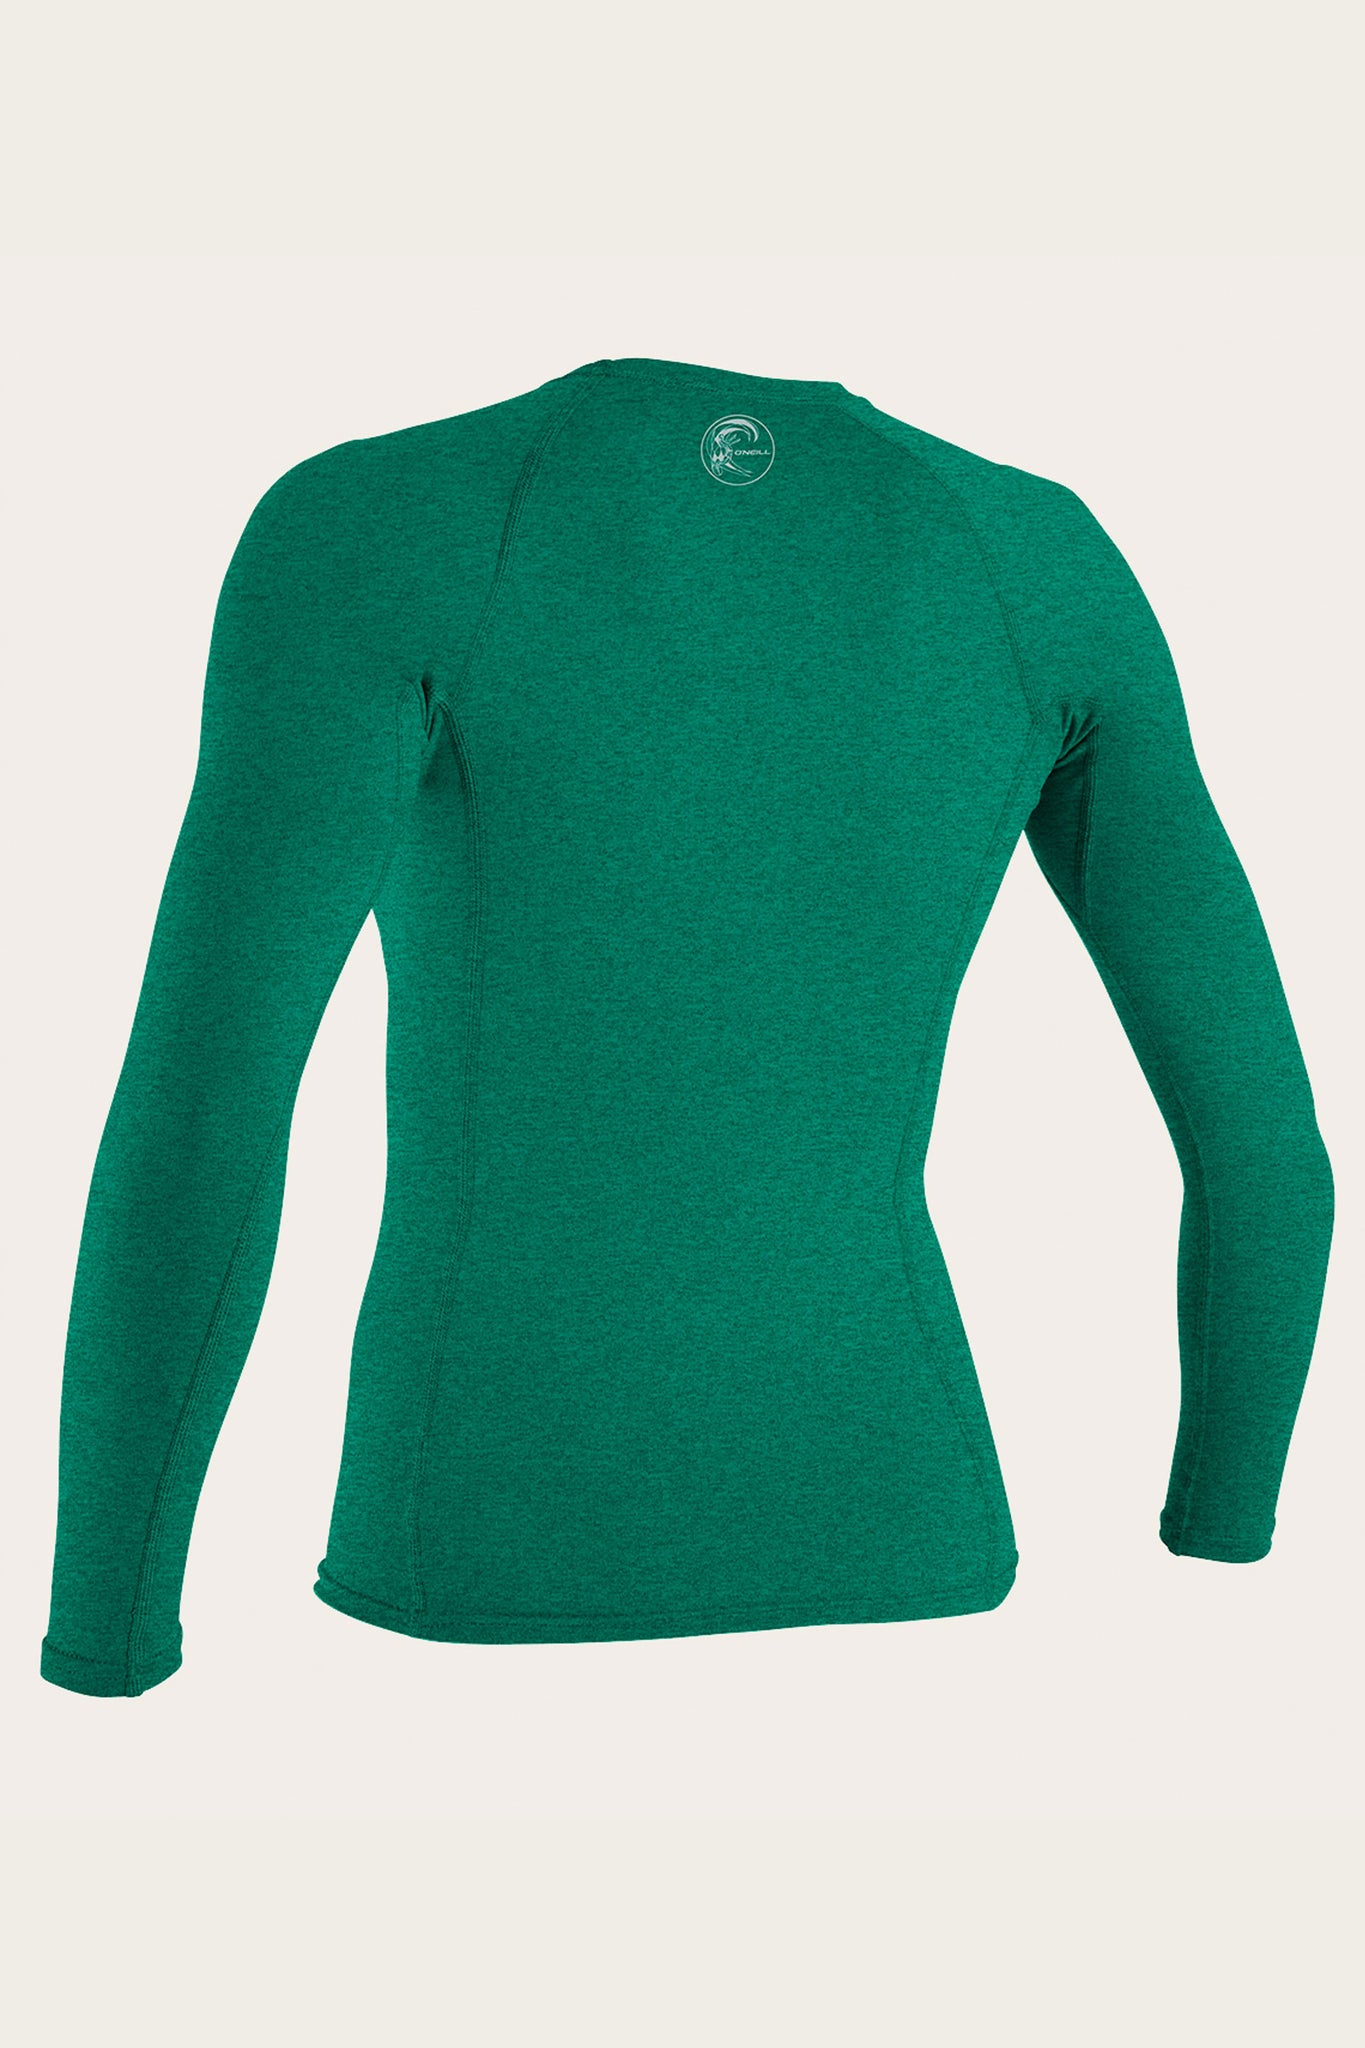 WOMEN'S HYBRID L/S RASH GUARD